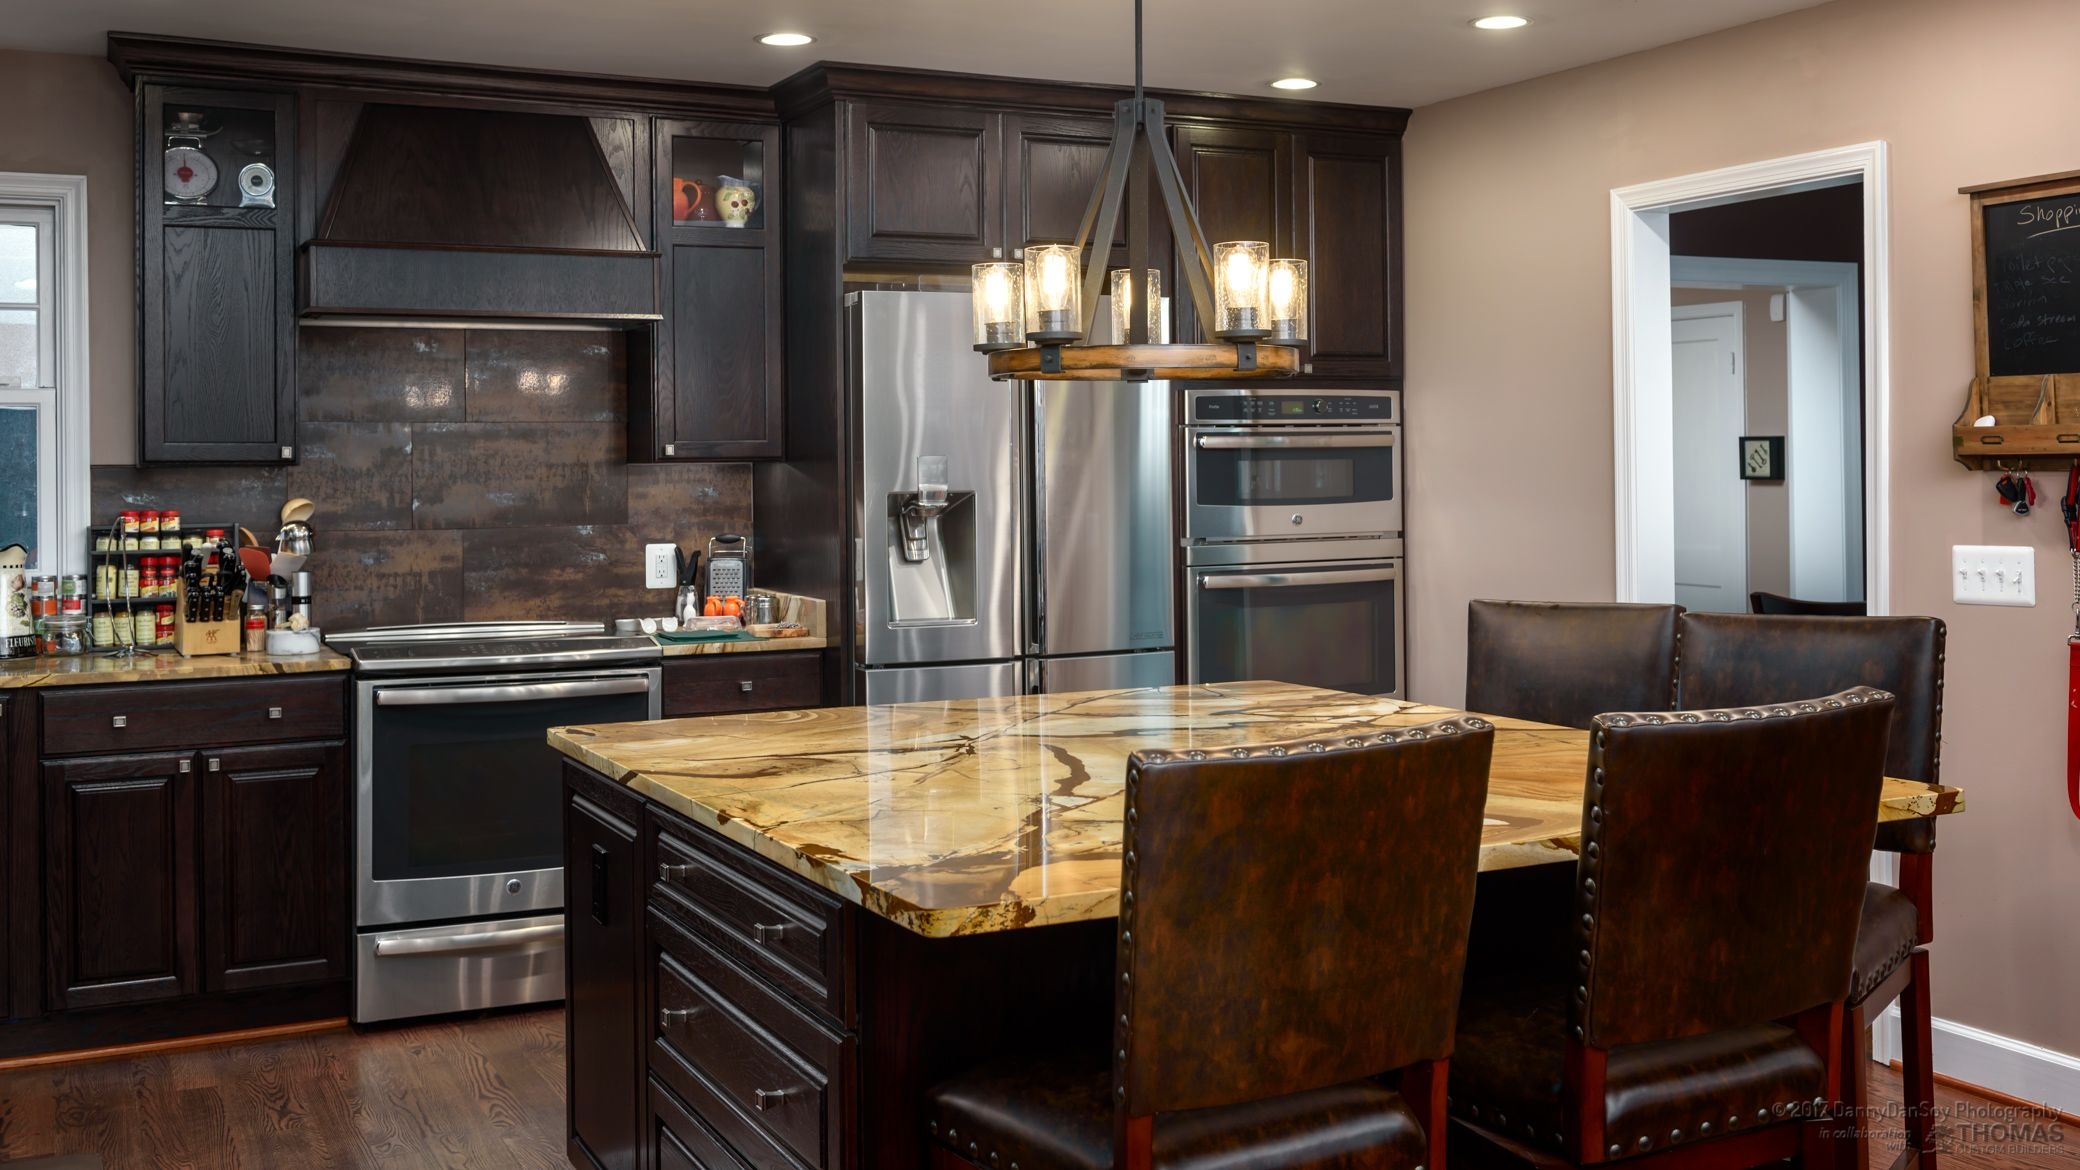 Stone Name Roma Imperiale Quartzite Project Date 2018 Project Type Kitchen Builder Thomas Custom Builde Granite Countertops Countertops Kitchen Builder